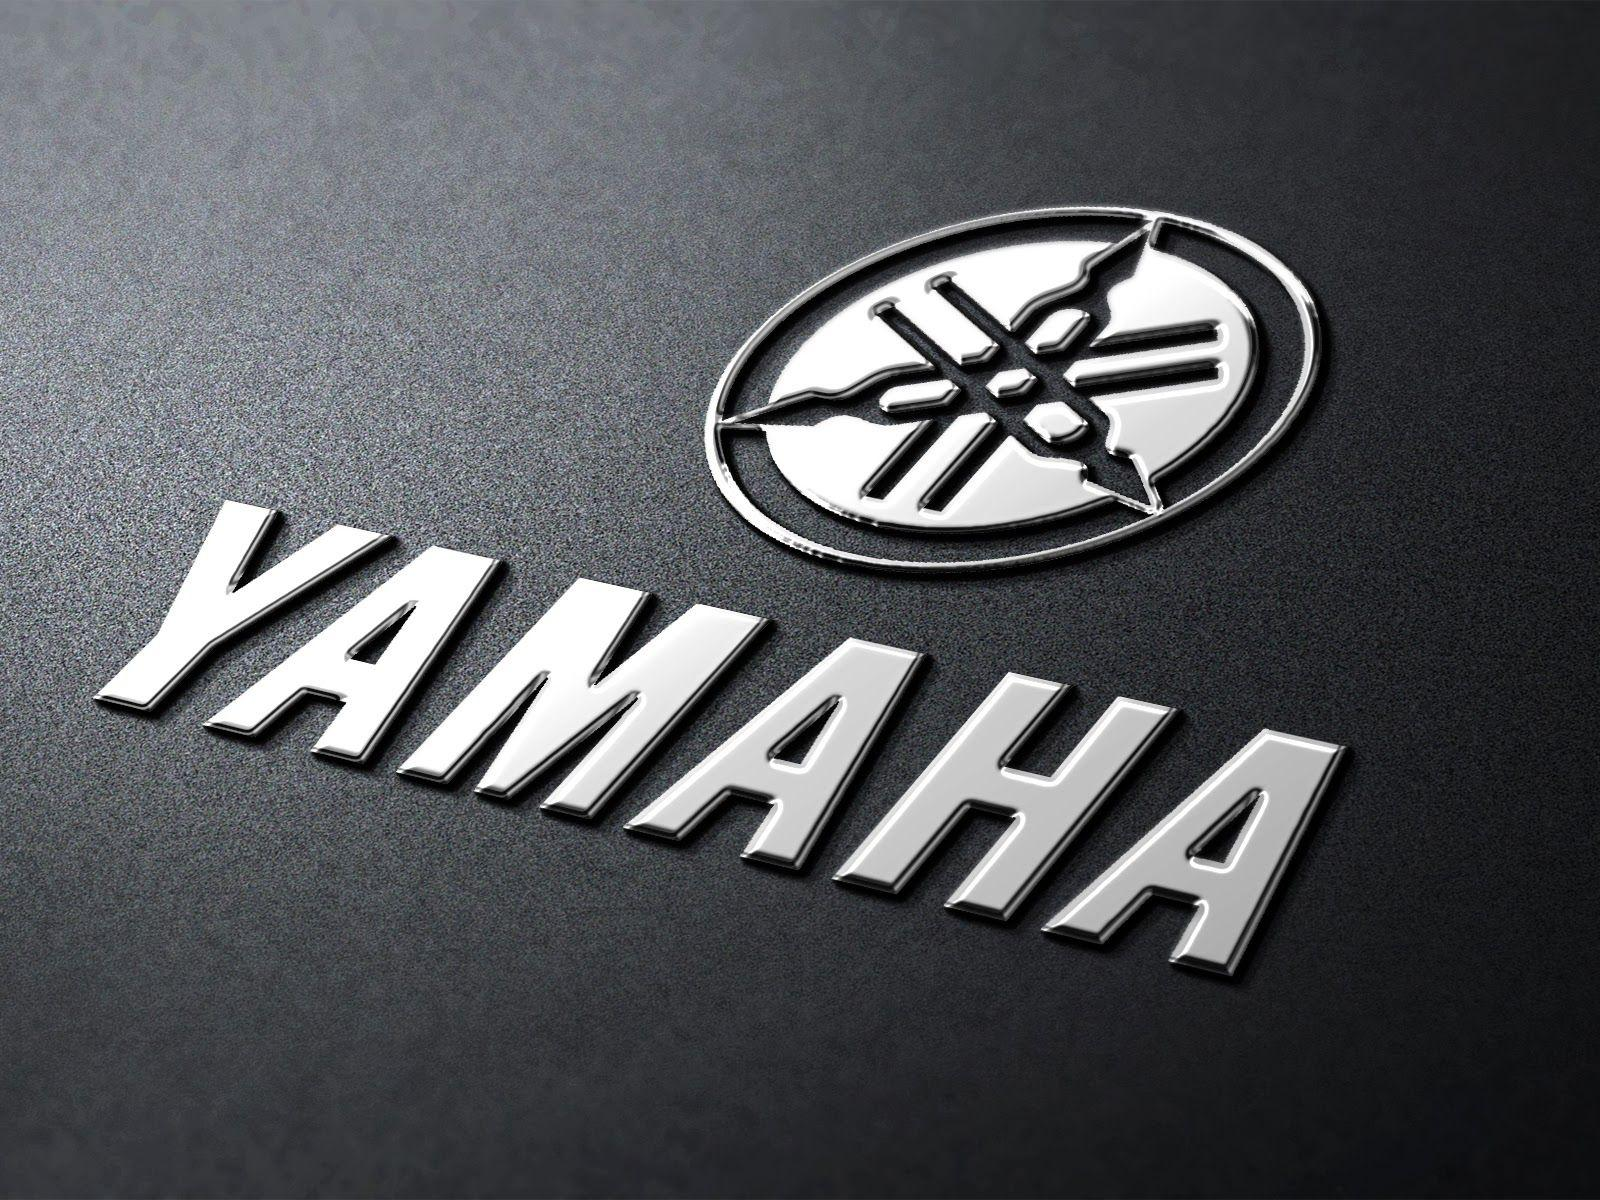 Yamaha Logo Wallpapers on